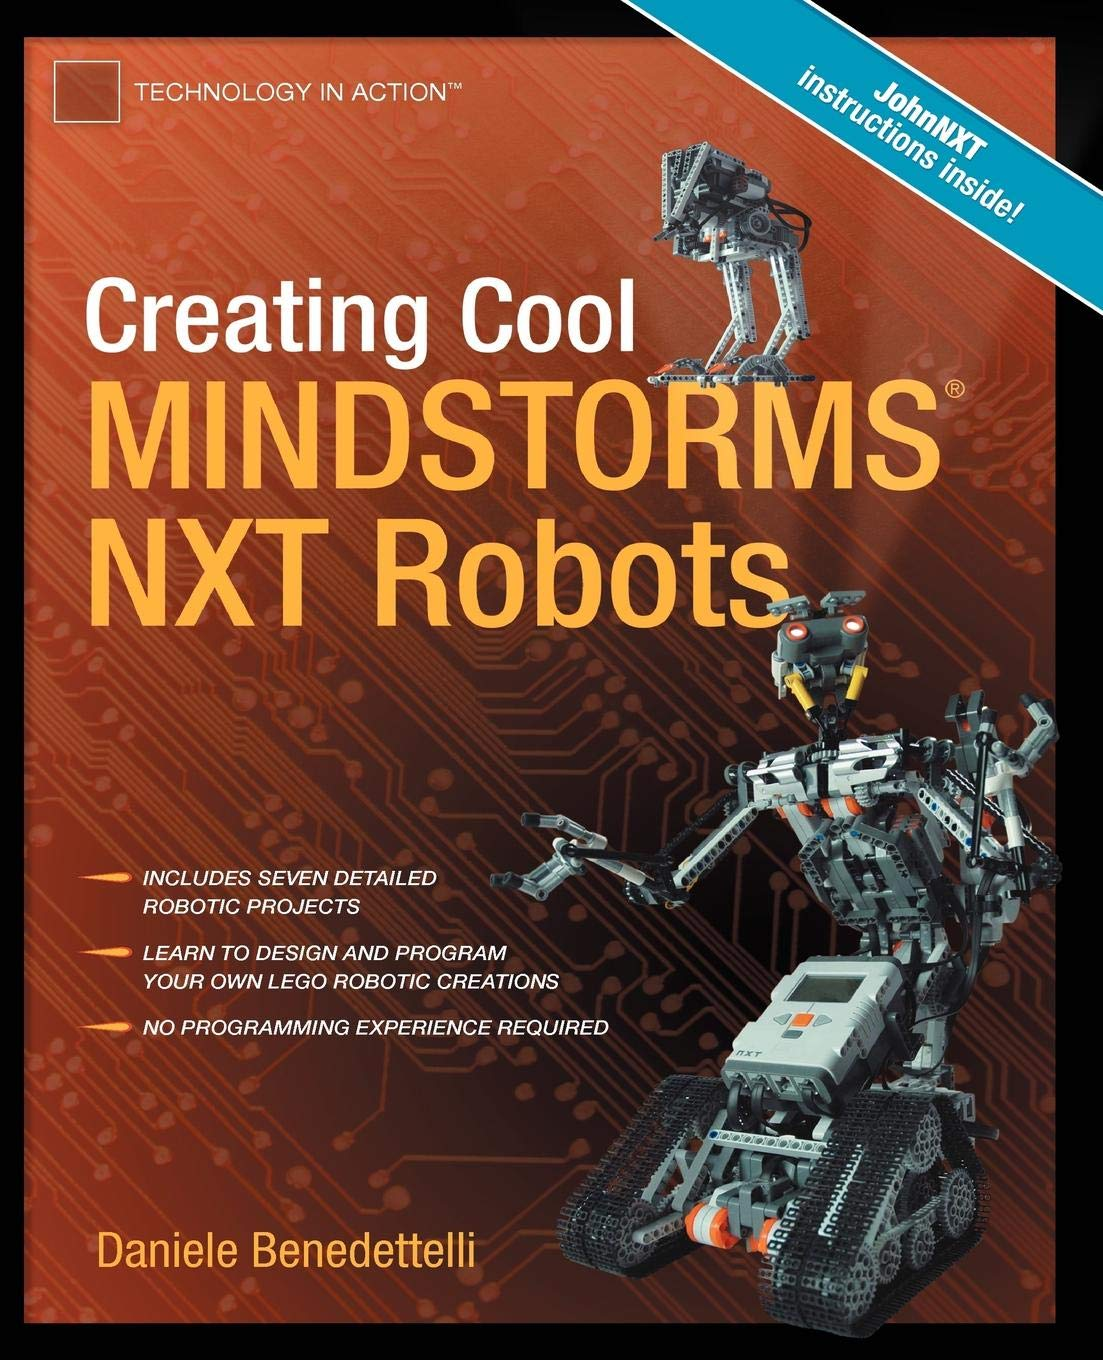 Creating Cool LEGO MINDSTORMS NXT Robots